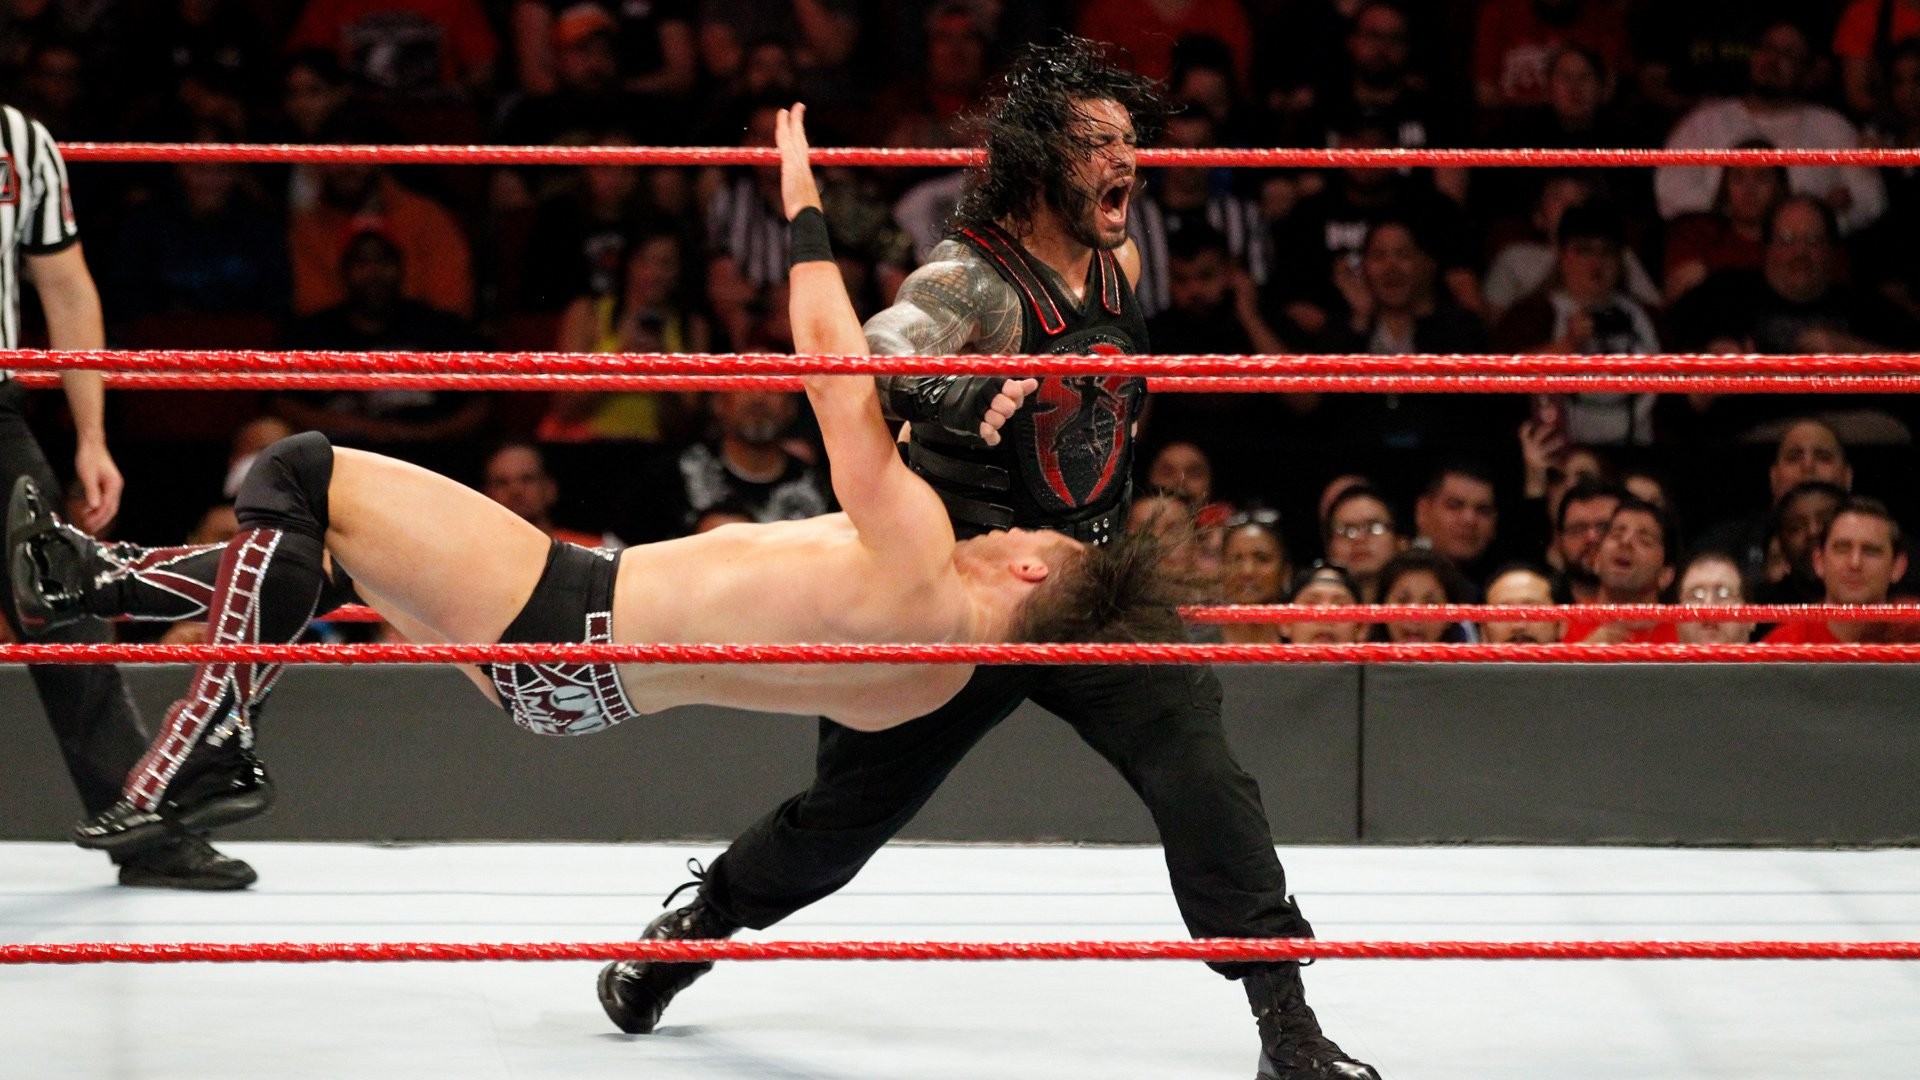 roman reigns speaks out about his brother u0027s passing and his plans